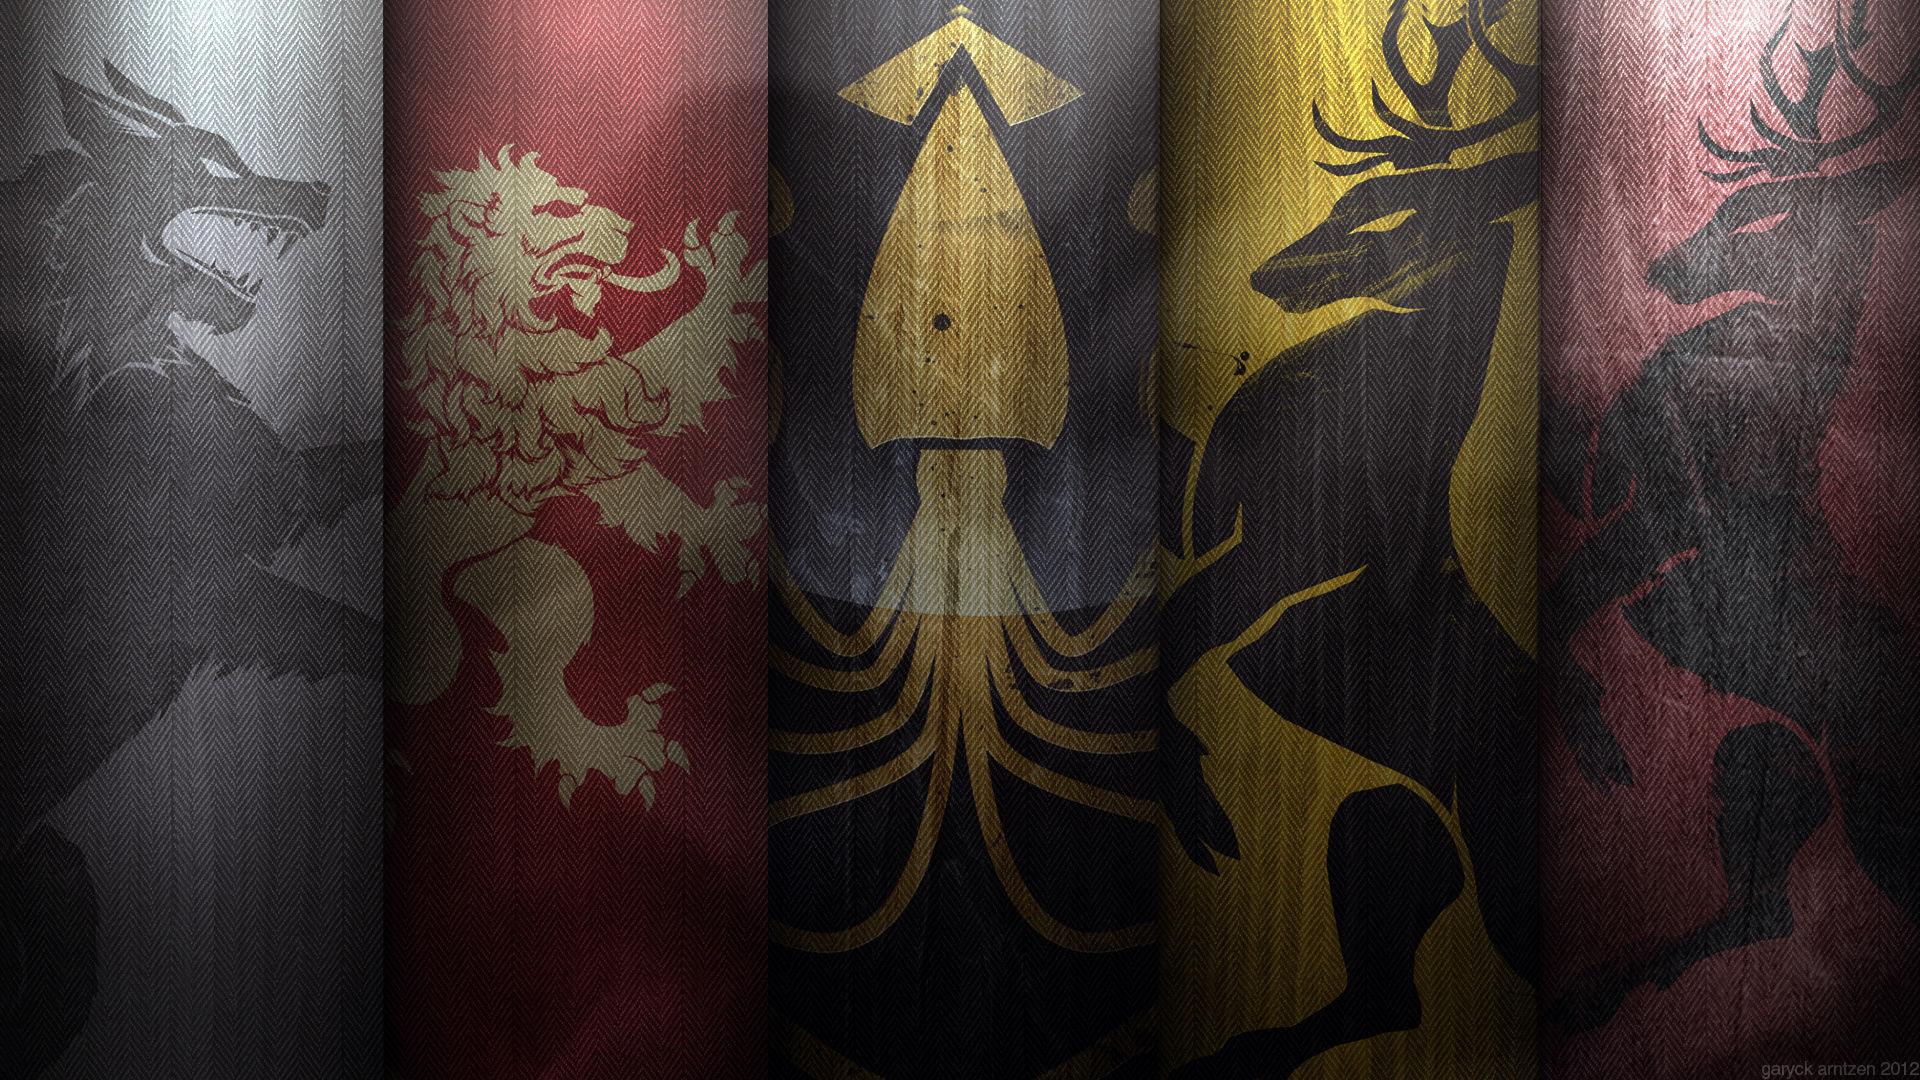 Game Of Thrones Wallpaper 1080p Wallpapersafari